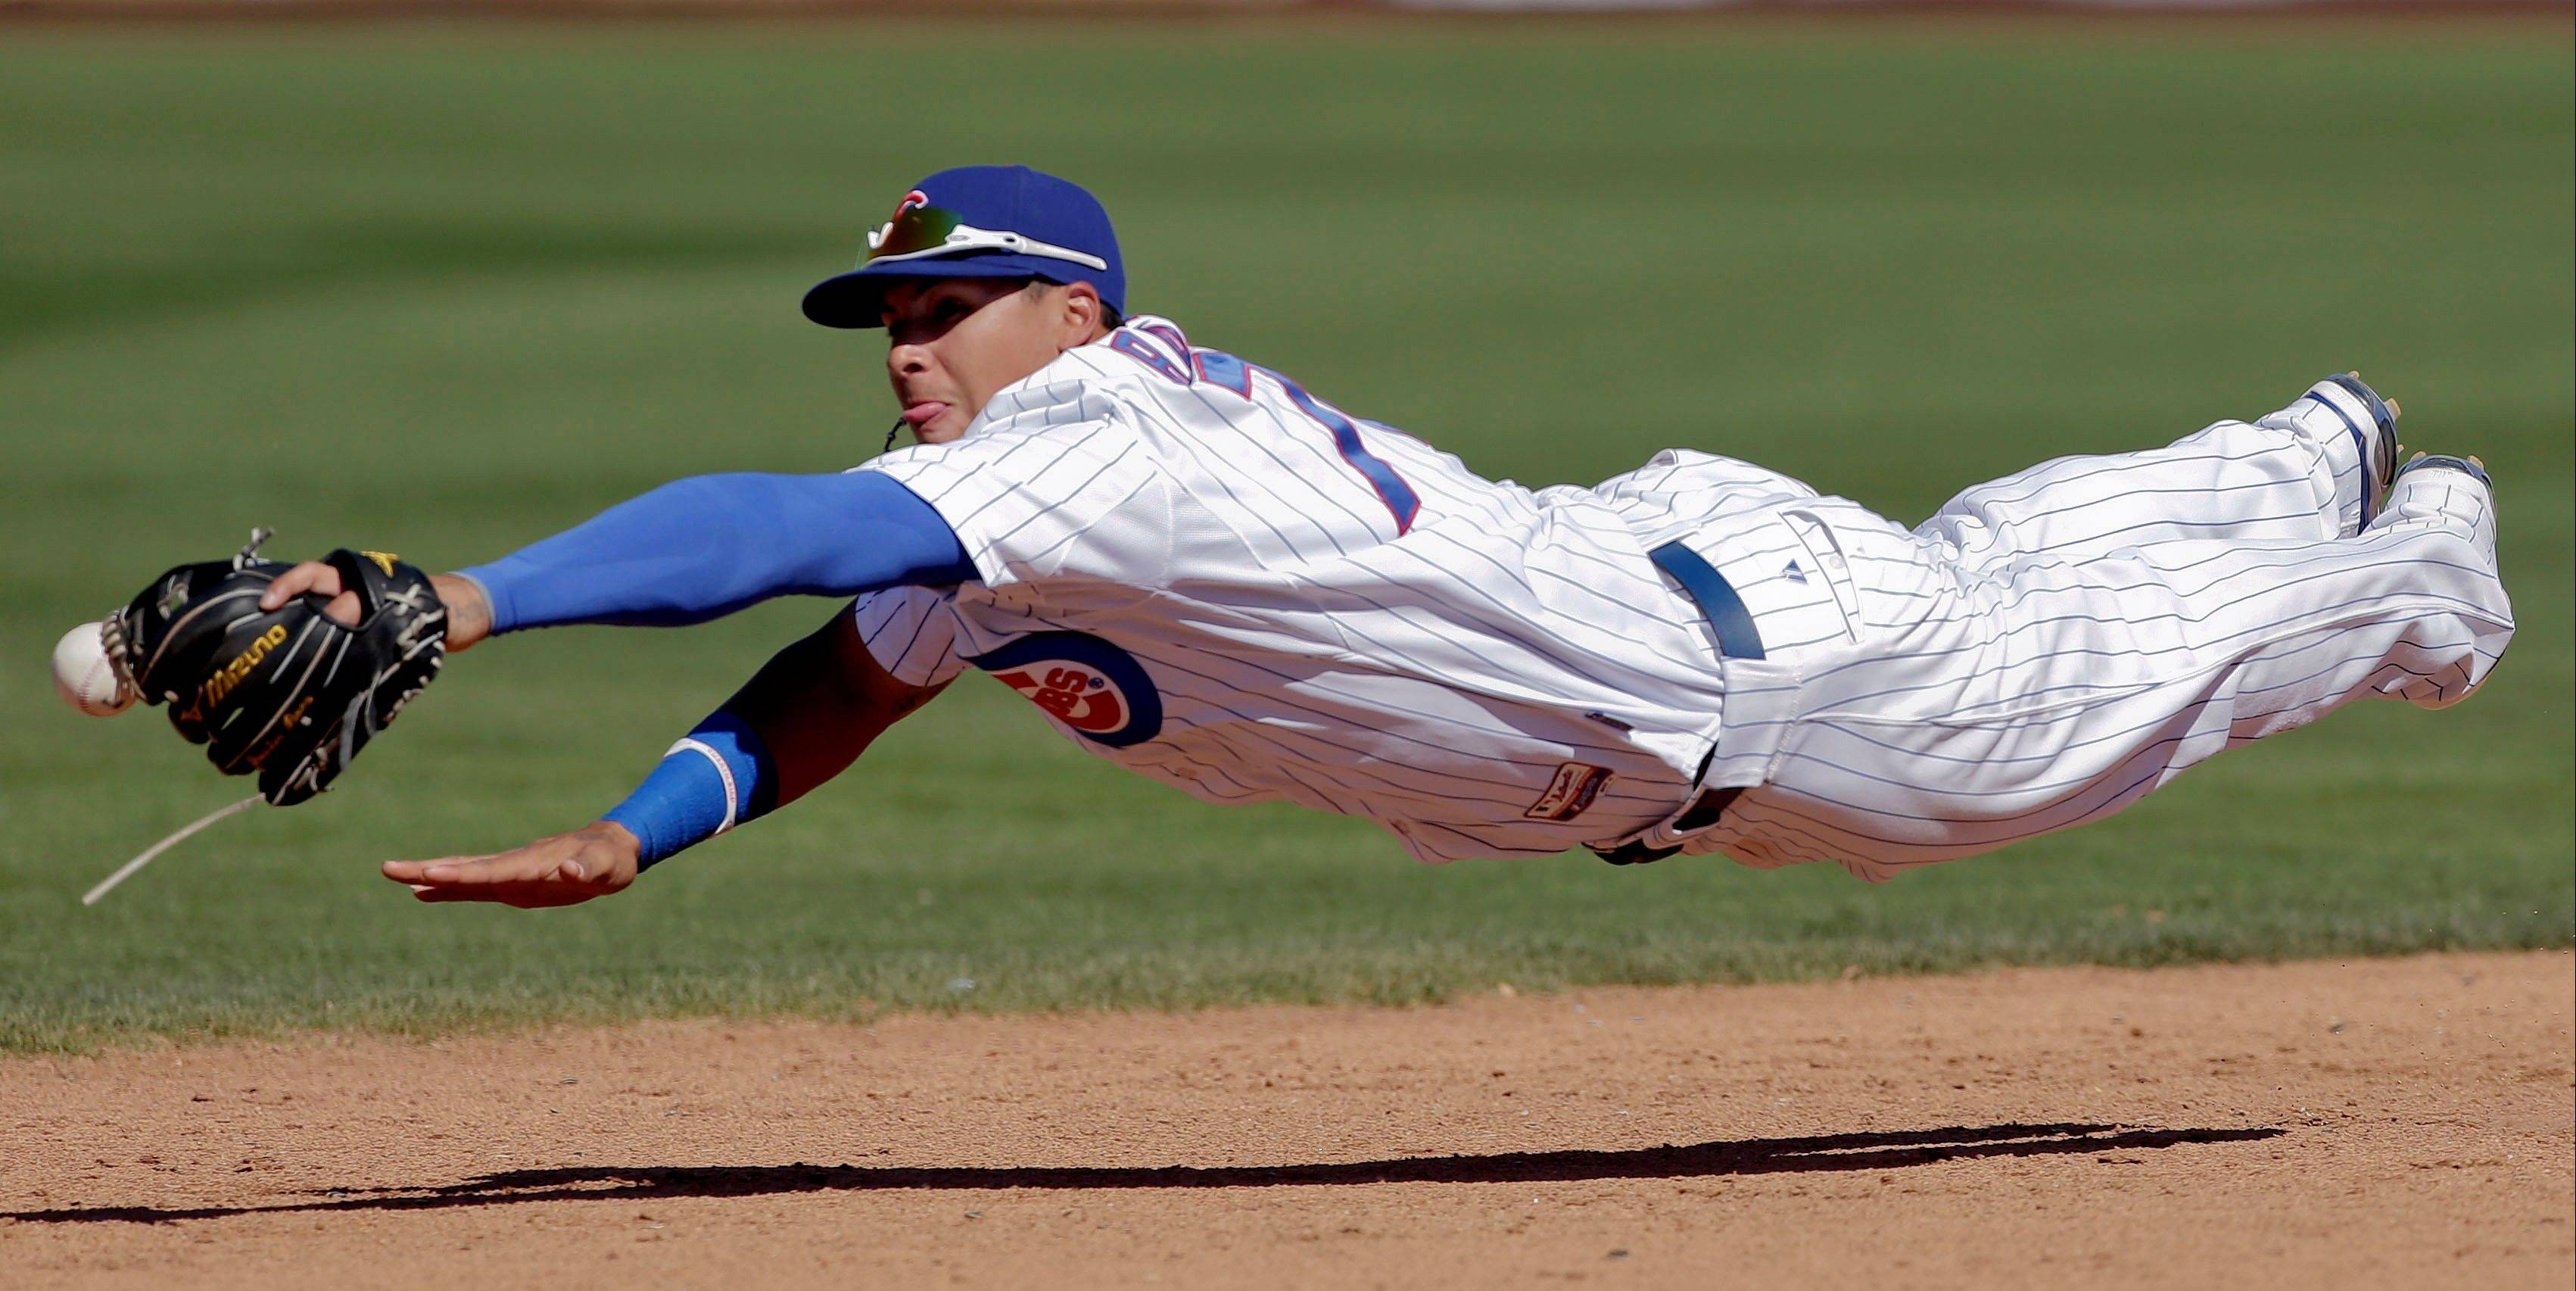 Cubs shortstop Javier Baez can't get a glove on a hit by Colorado's Eric Young Jr. last Wednesday. Baez, who was sent to the minors Monday, is very appreciative of the advice given by Alfonso Soriano.